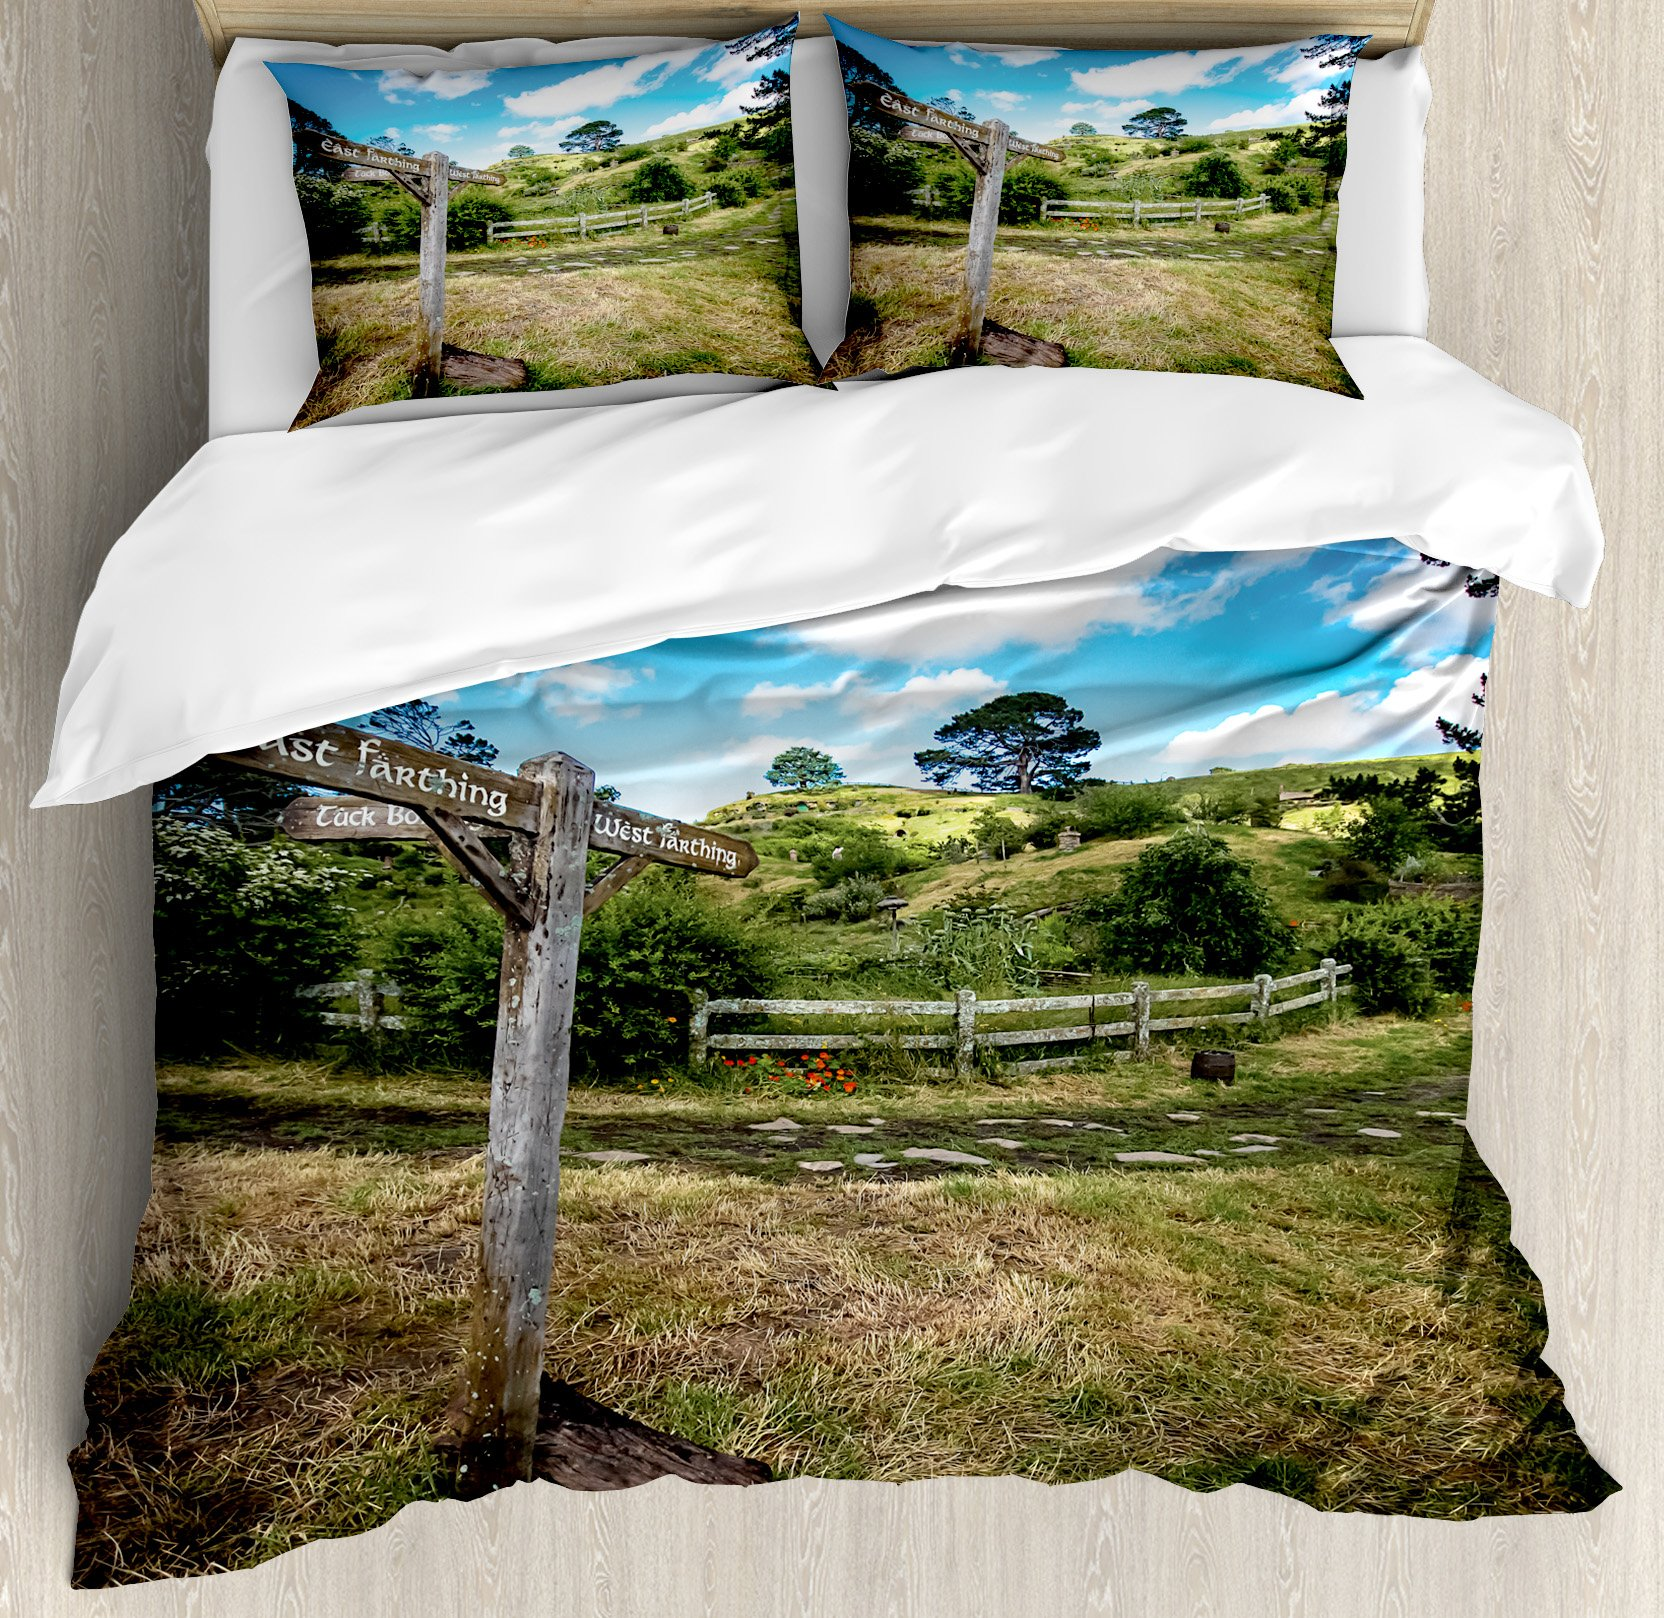 Hobbits Duvet Cover Set by Ambesonne, Rustic Wooden Sign in Hobbit Land East West Movie Set New Zealand The Shire, 3 Piece Bedding Set with Pillow Shams, Queen / Full, Green Brown